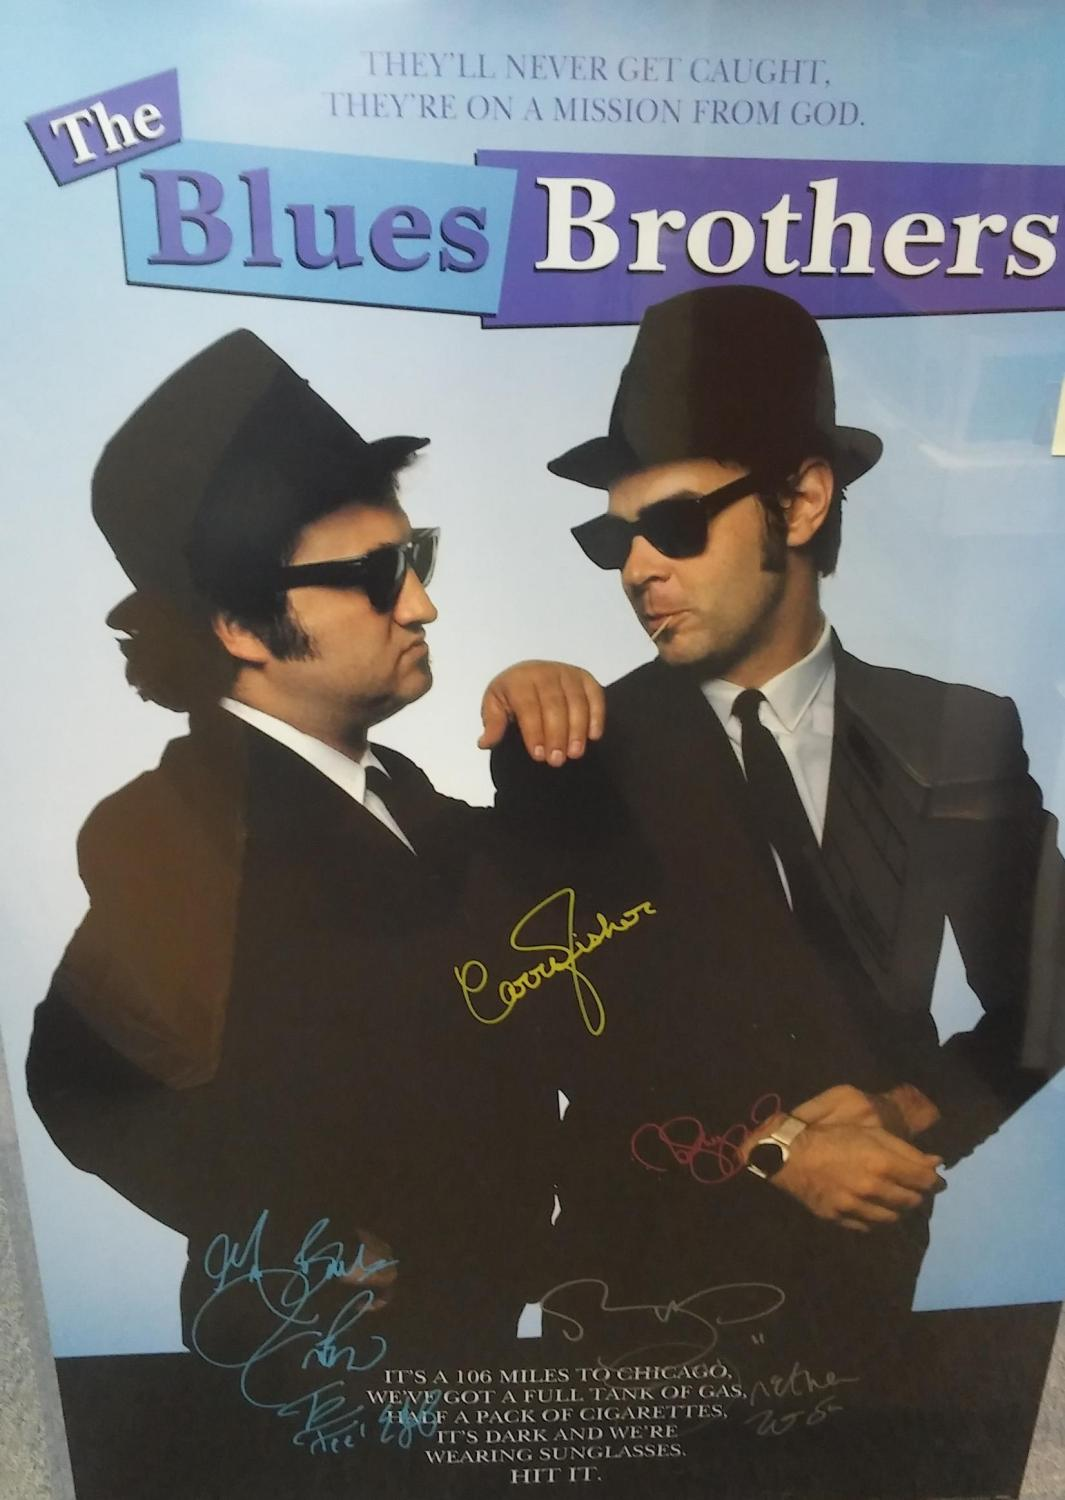 FULL SIZE MOVIE POSTER 'THE BLUES BROTHERS', *SIGNED* BY CAST (REPRINT POSTER), n/a